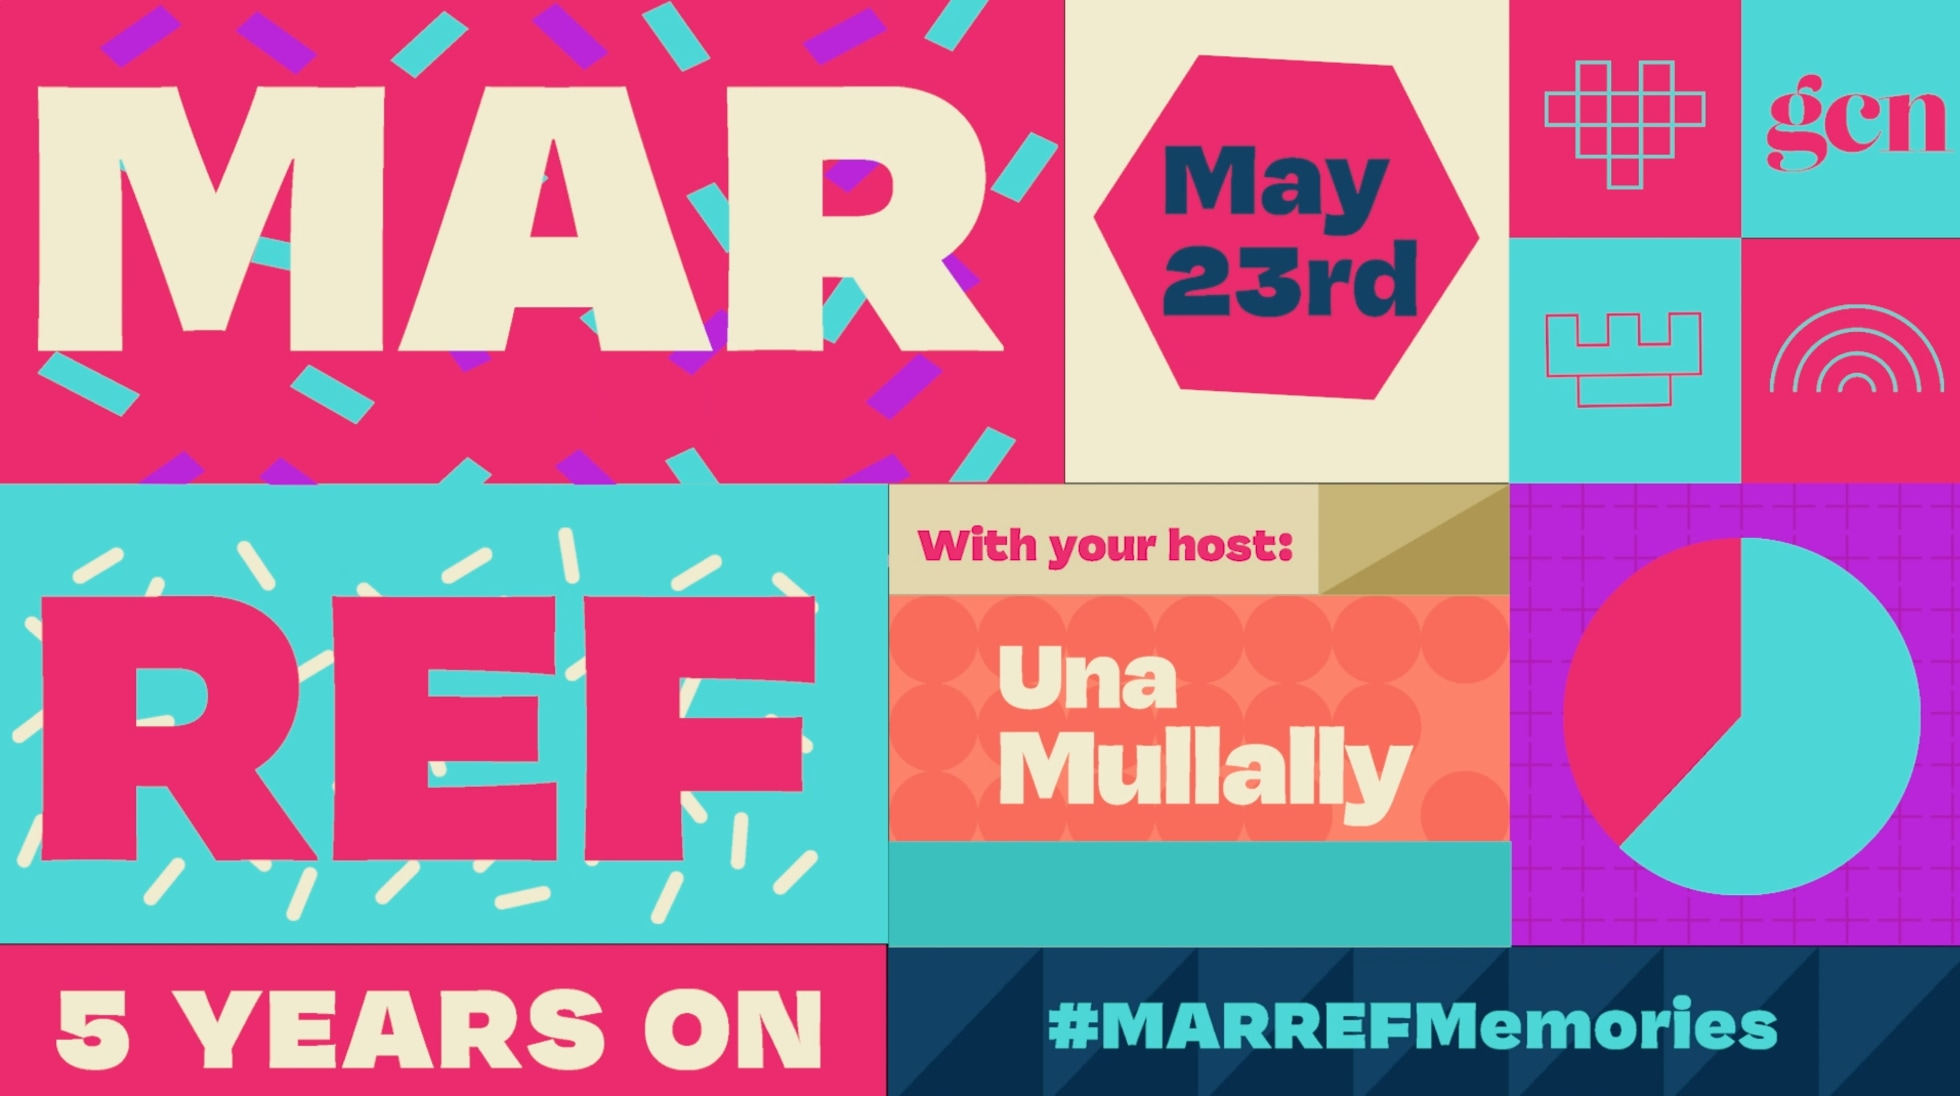 Poster for Mar Ref 5 Years On event. The poster feature the event title, date of May 23 as well as host Una Mullally and hashtag #MARREFMemories.